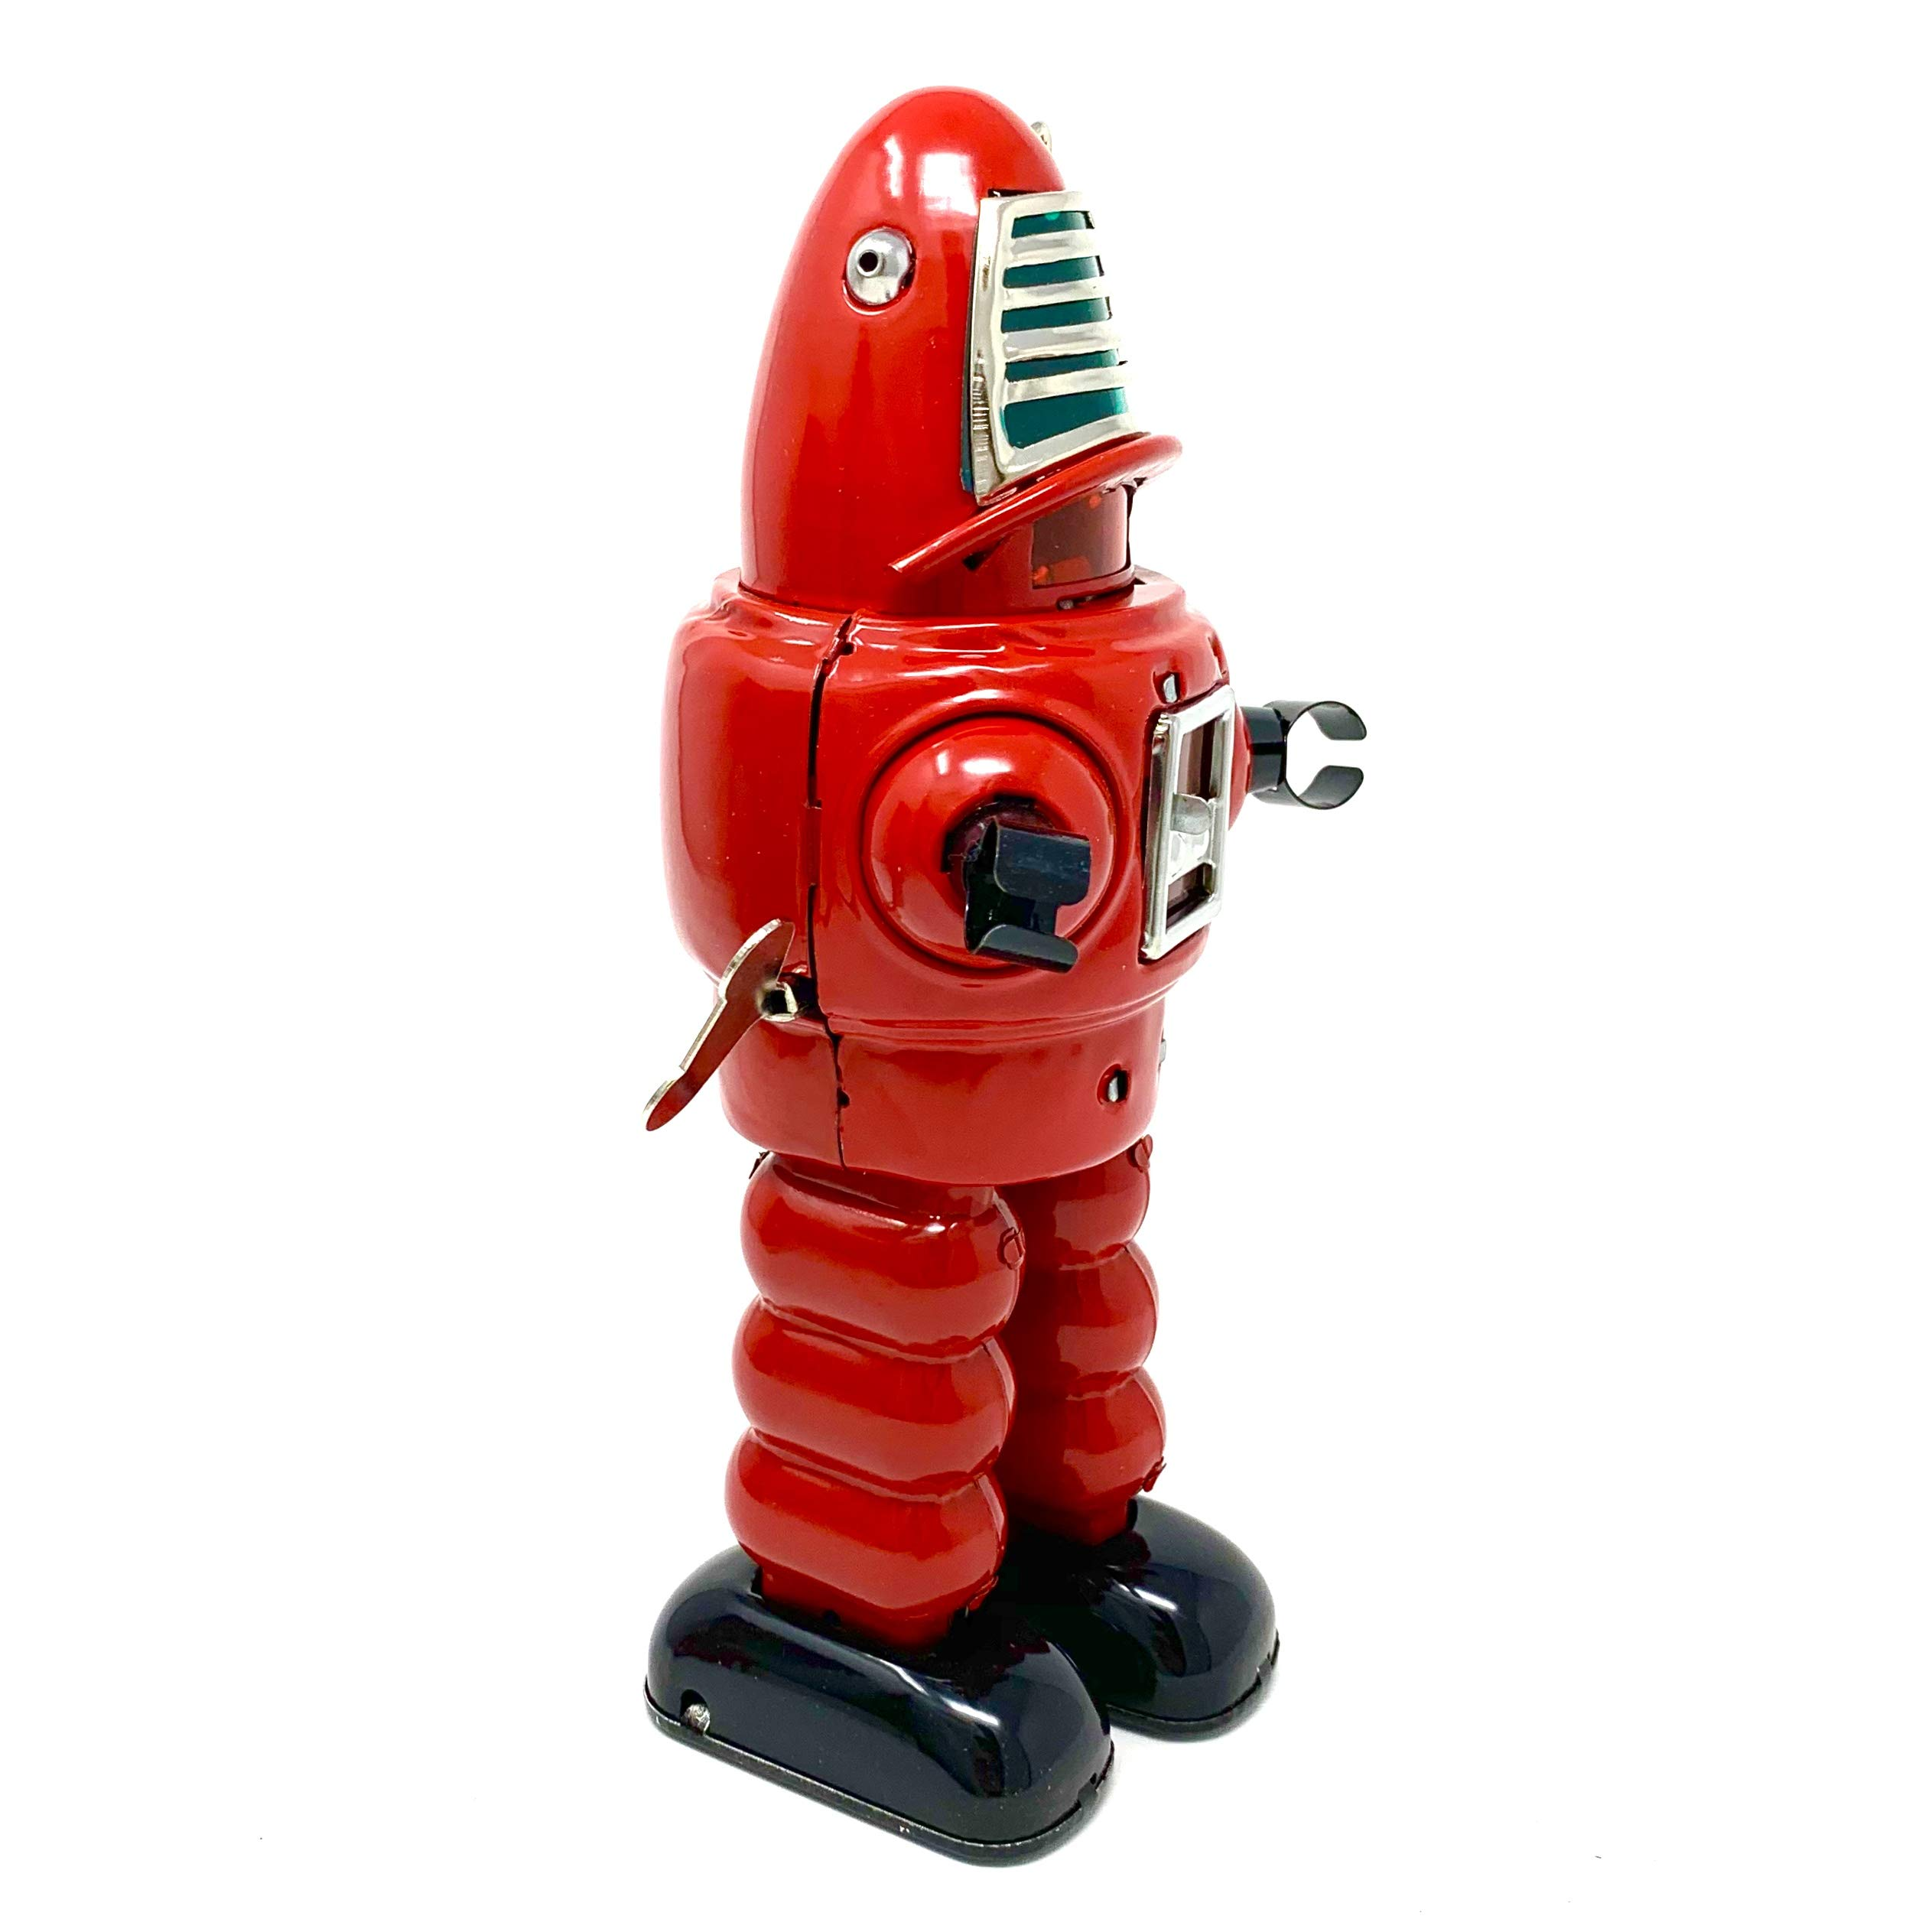 Off the Wall Toys Vintage Style Collectible Wind Up Red Planet Robot Wind Up 8.5'' MS430 by Off the Wall Toys (Image #3)